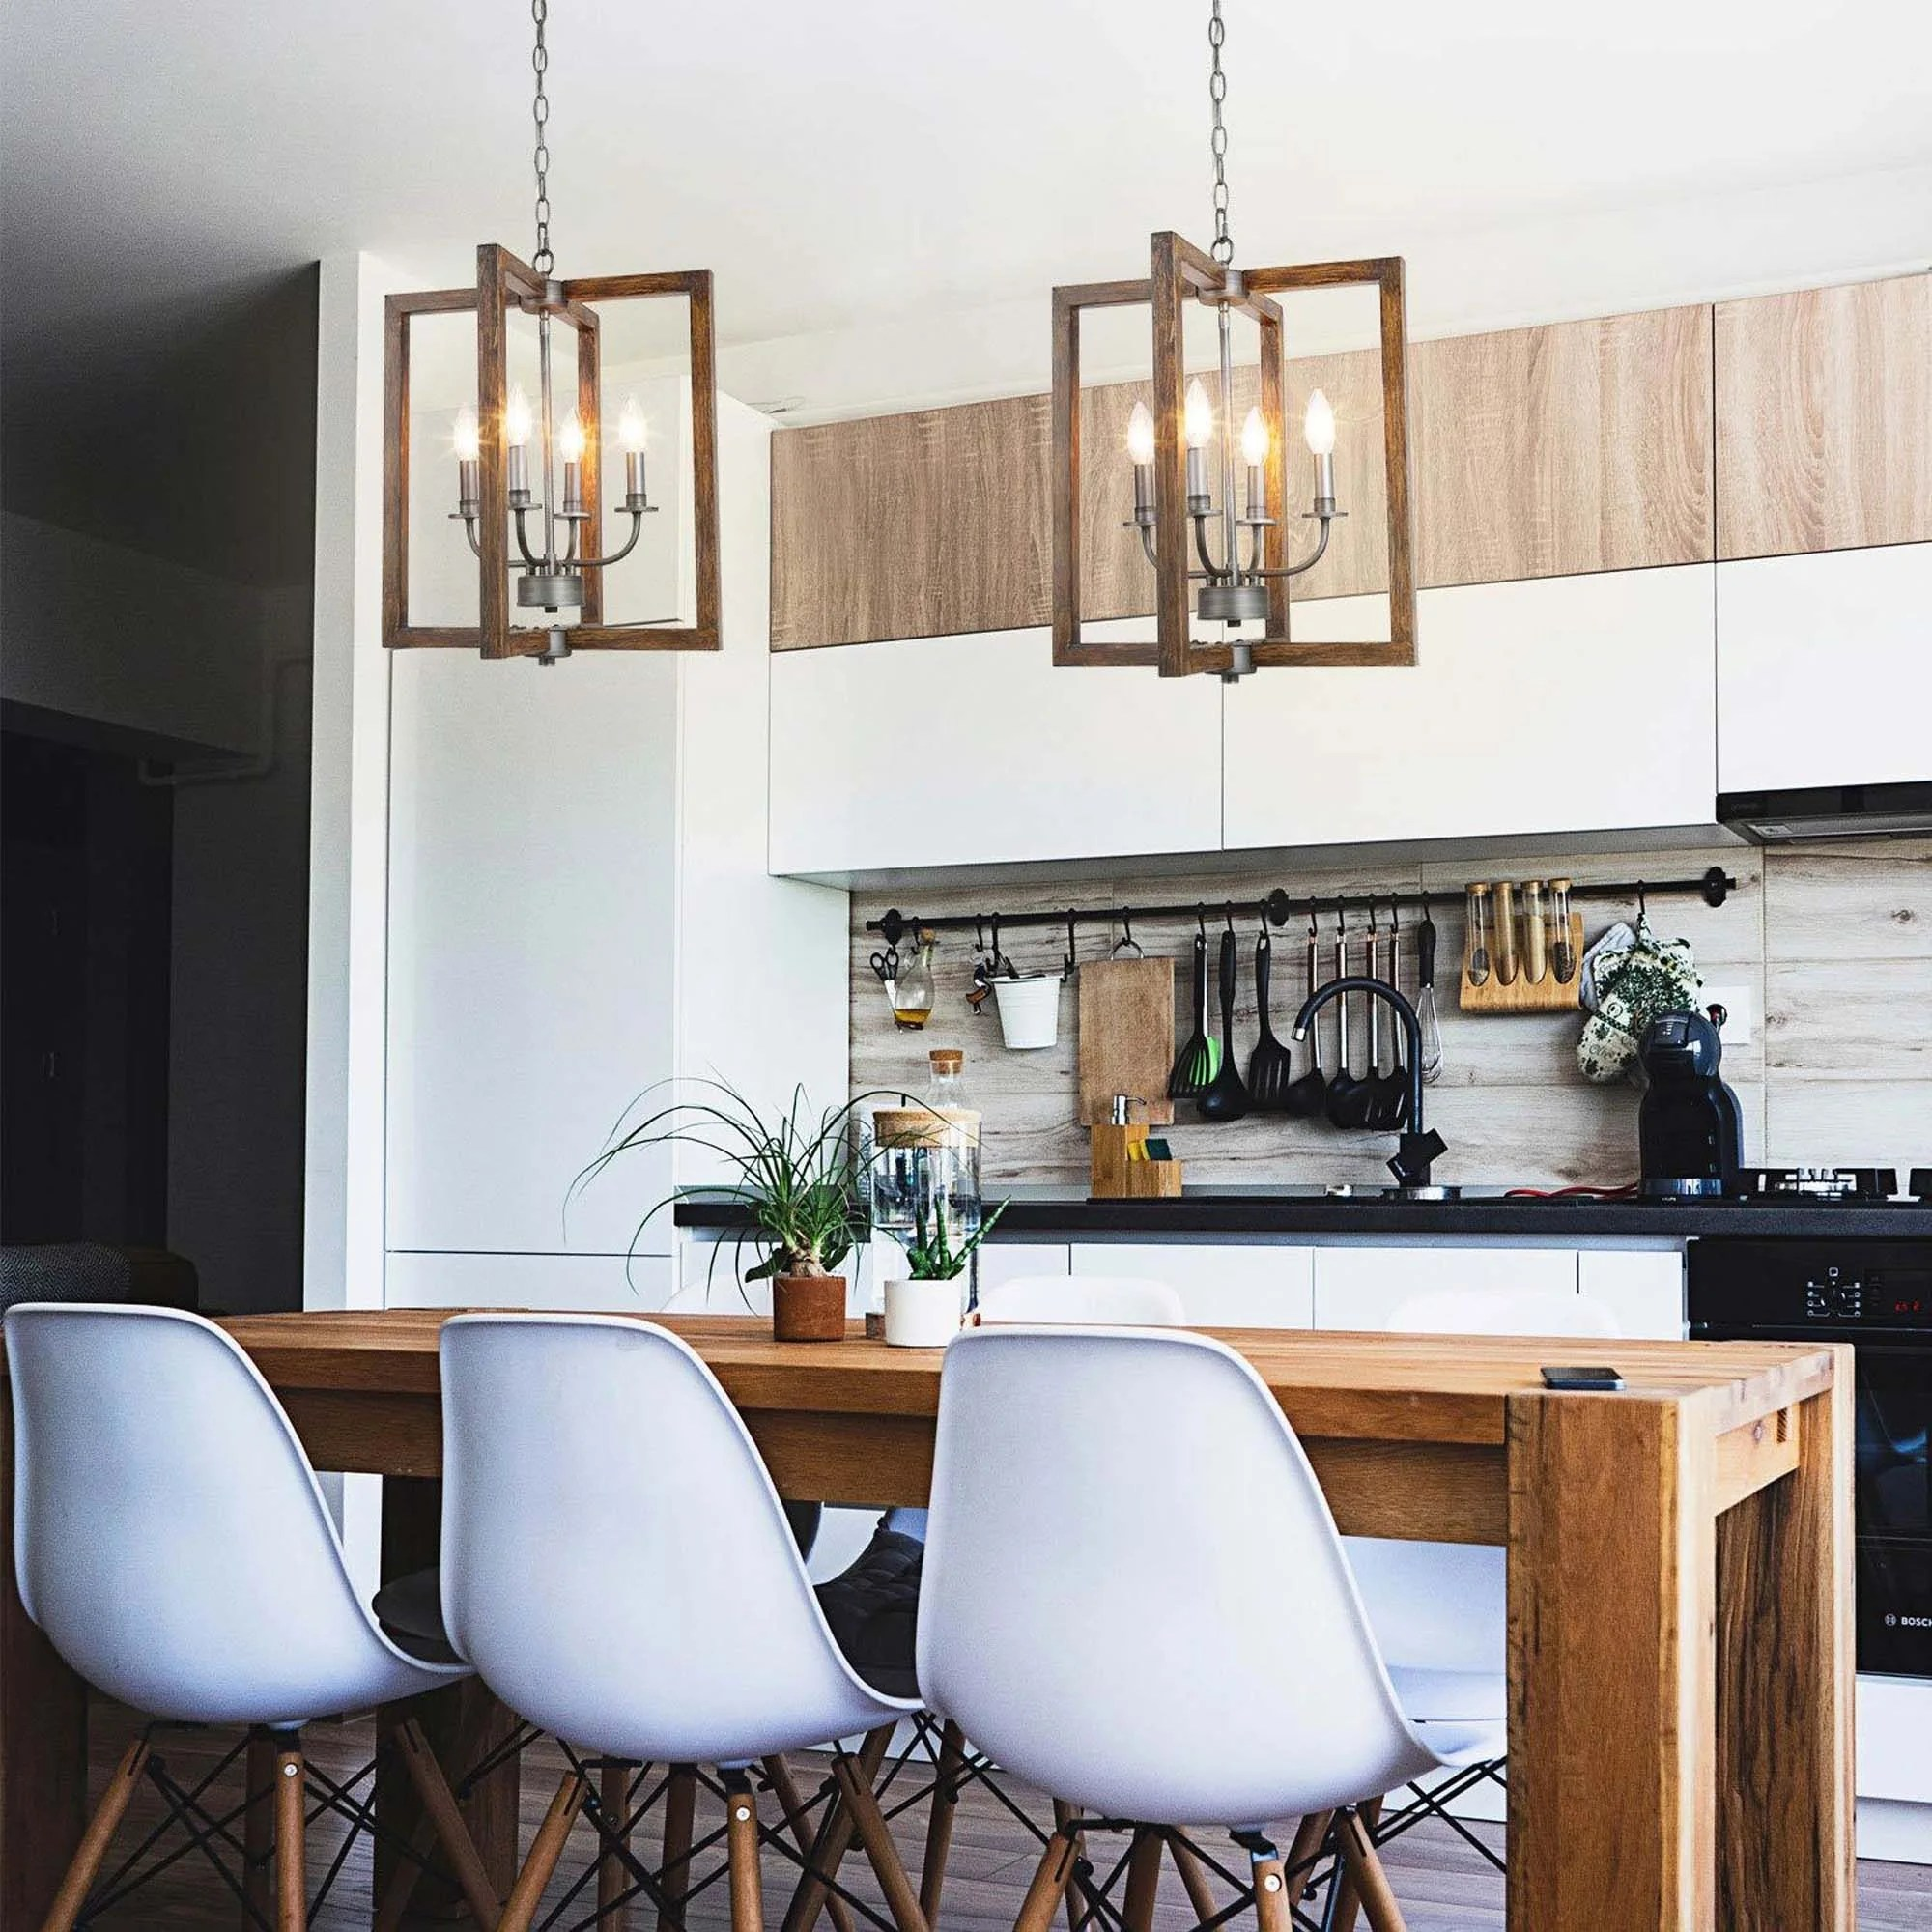 modern farmhouse 4 lights faux wood pendant lighting fixture for kitchen island dining room w16 5 xh20